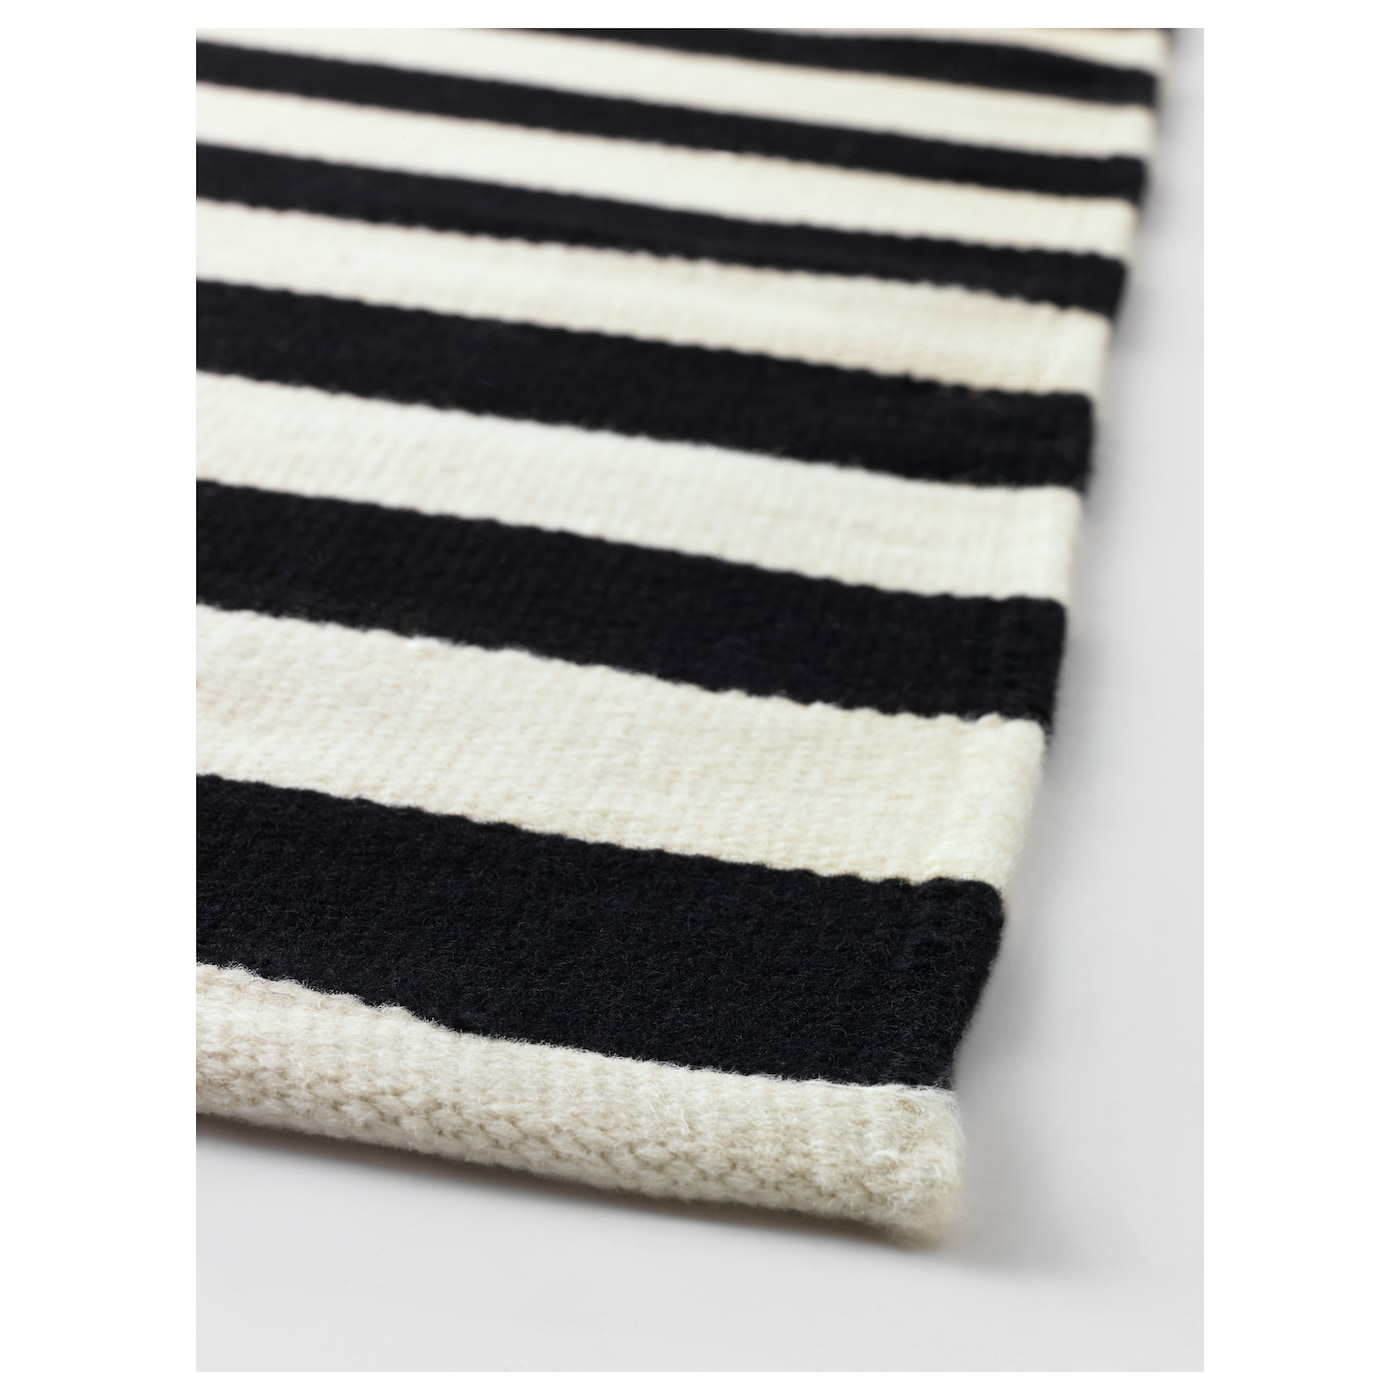 Stockholm rug flatwoven handmade striped black off white for Ikea rugs